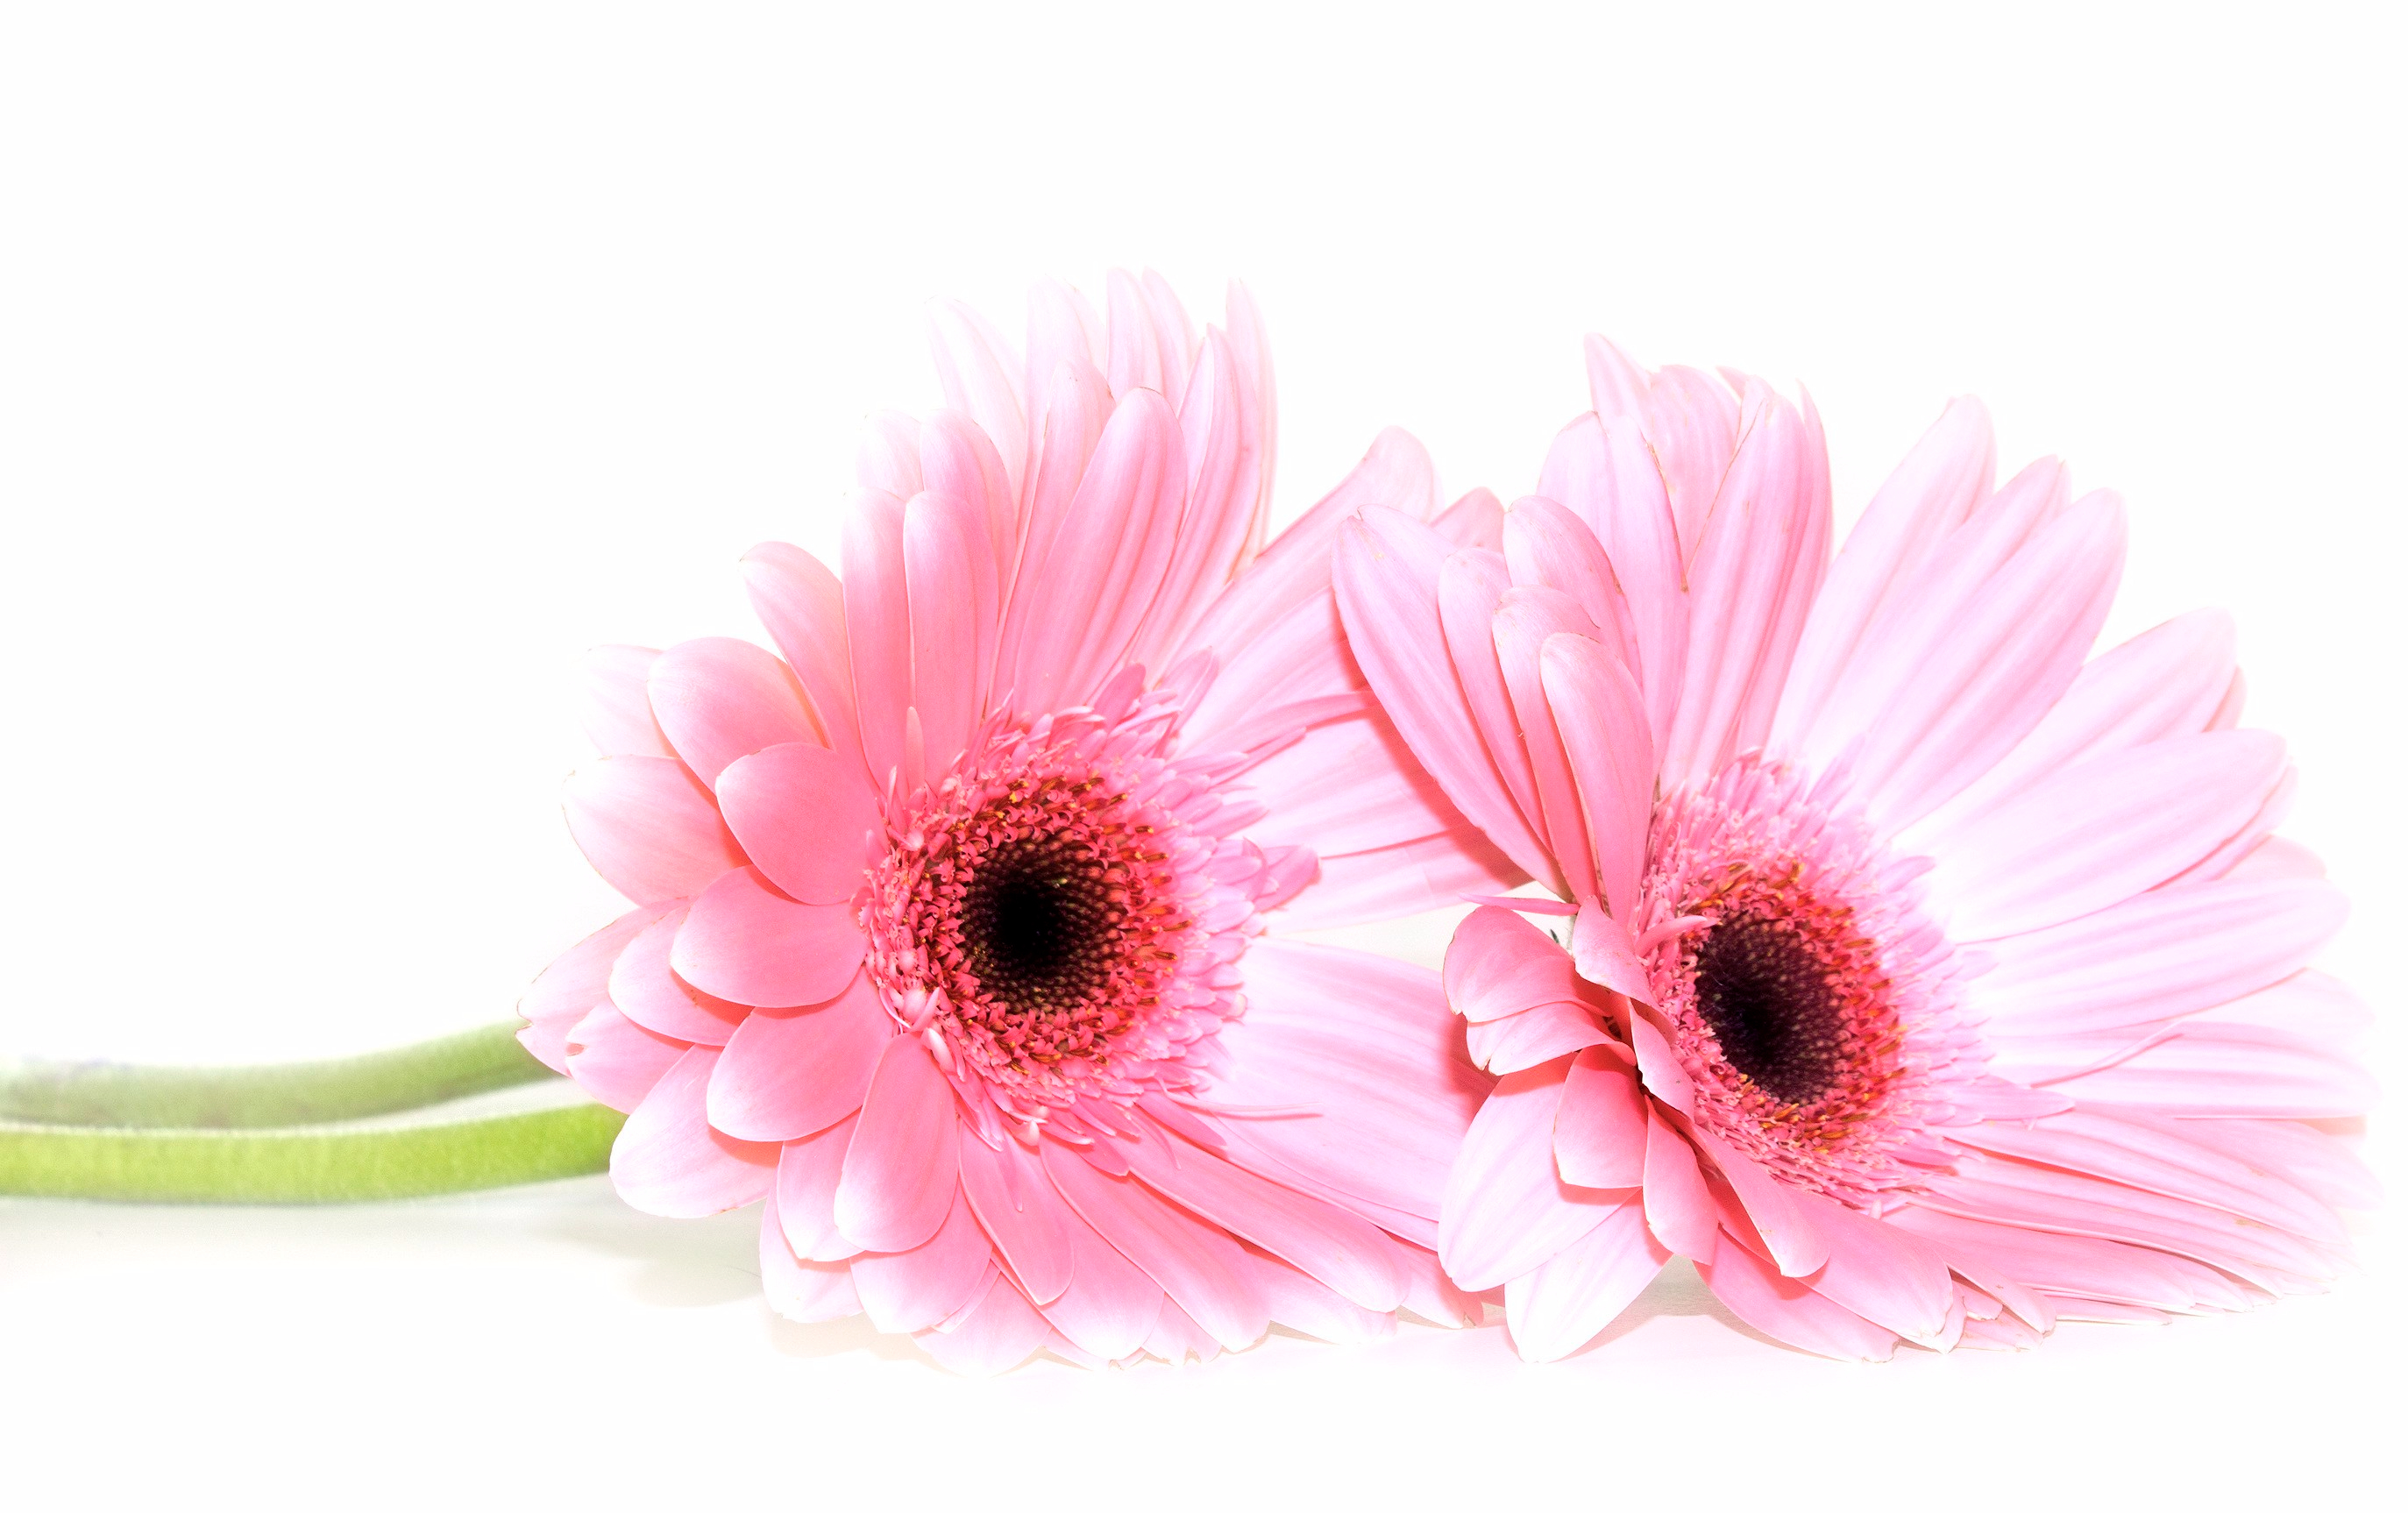 daisies-on-white-background_gyy6tyf_.jpg